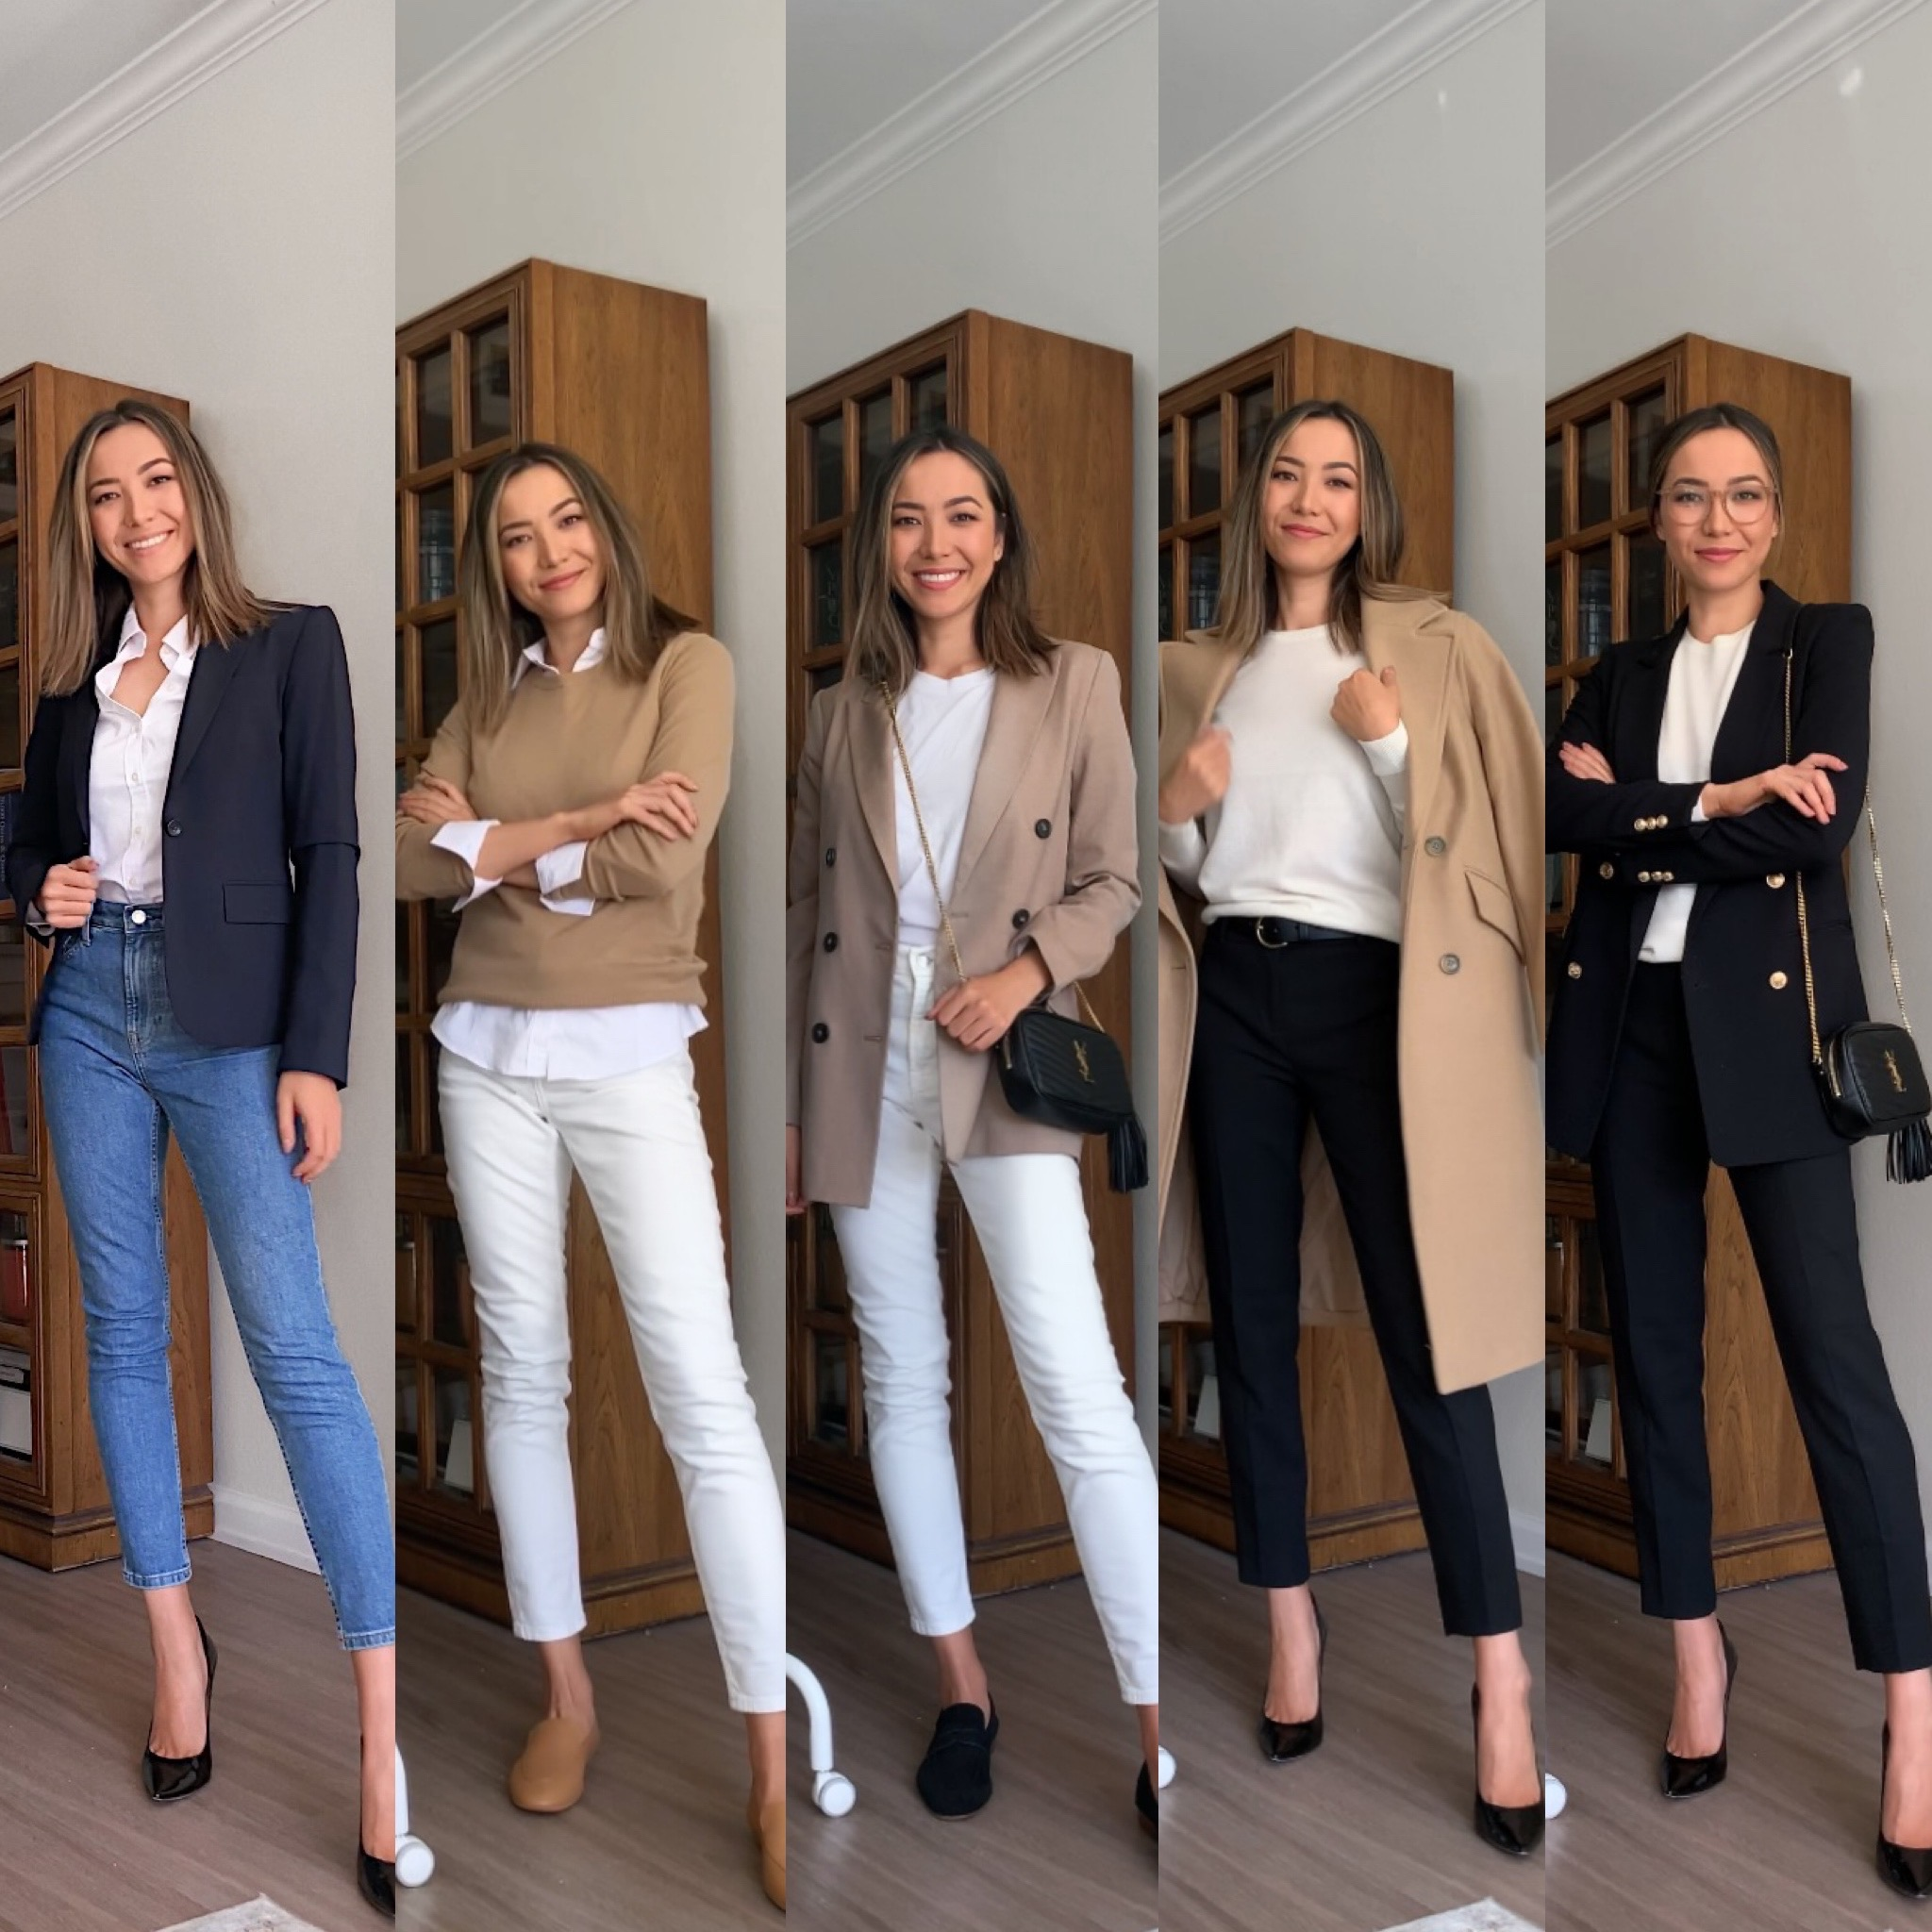 20 Business Casual Outfit Ideas [Styling Pieces from Your Capsule